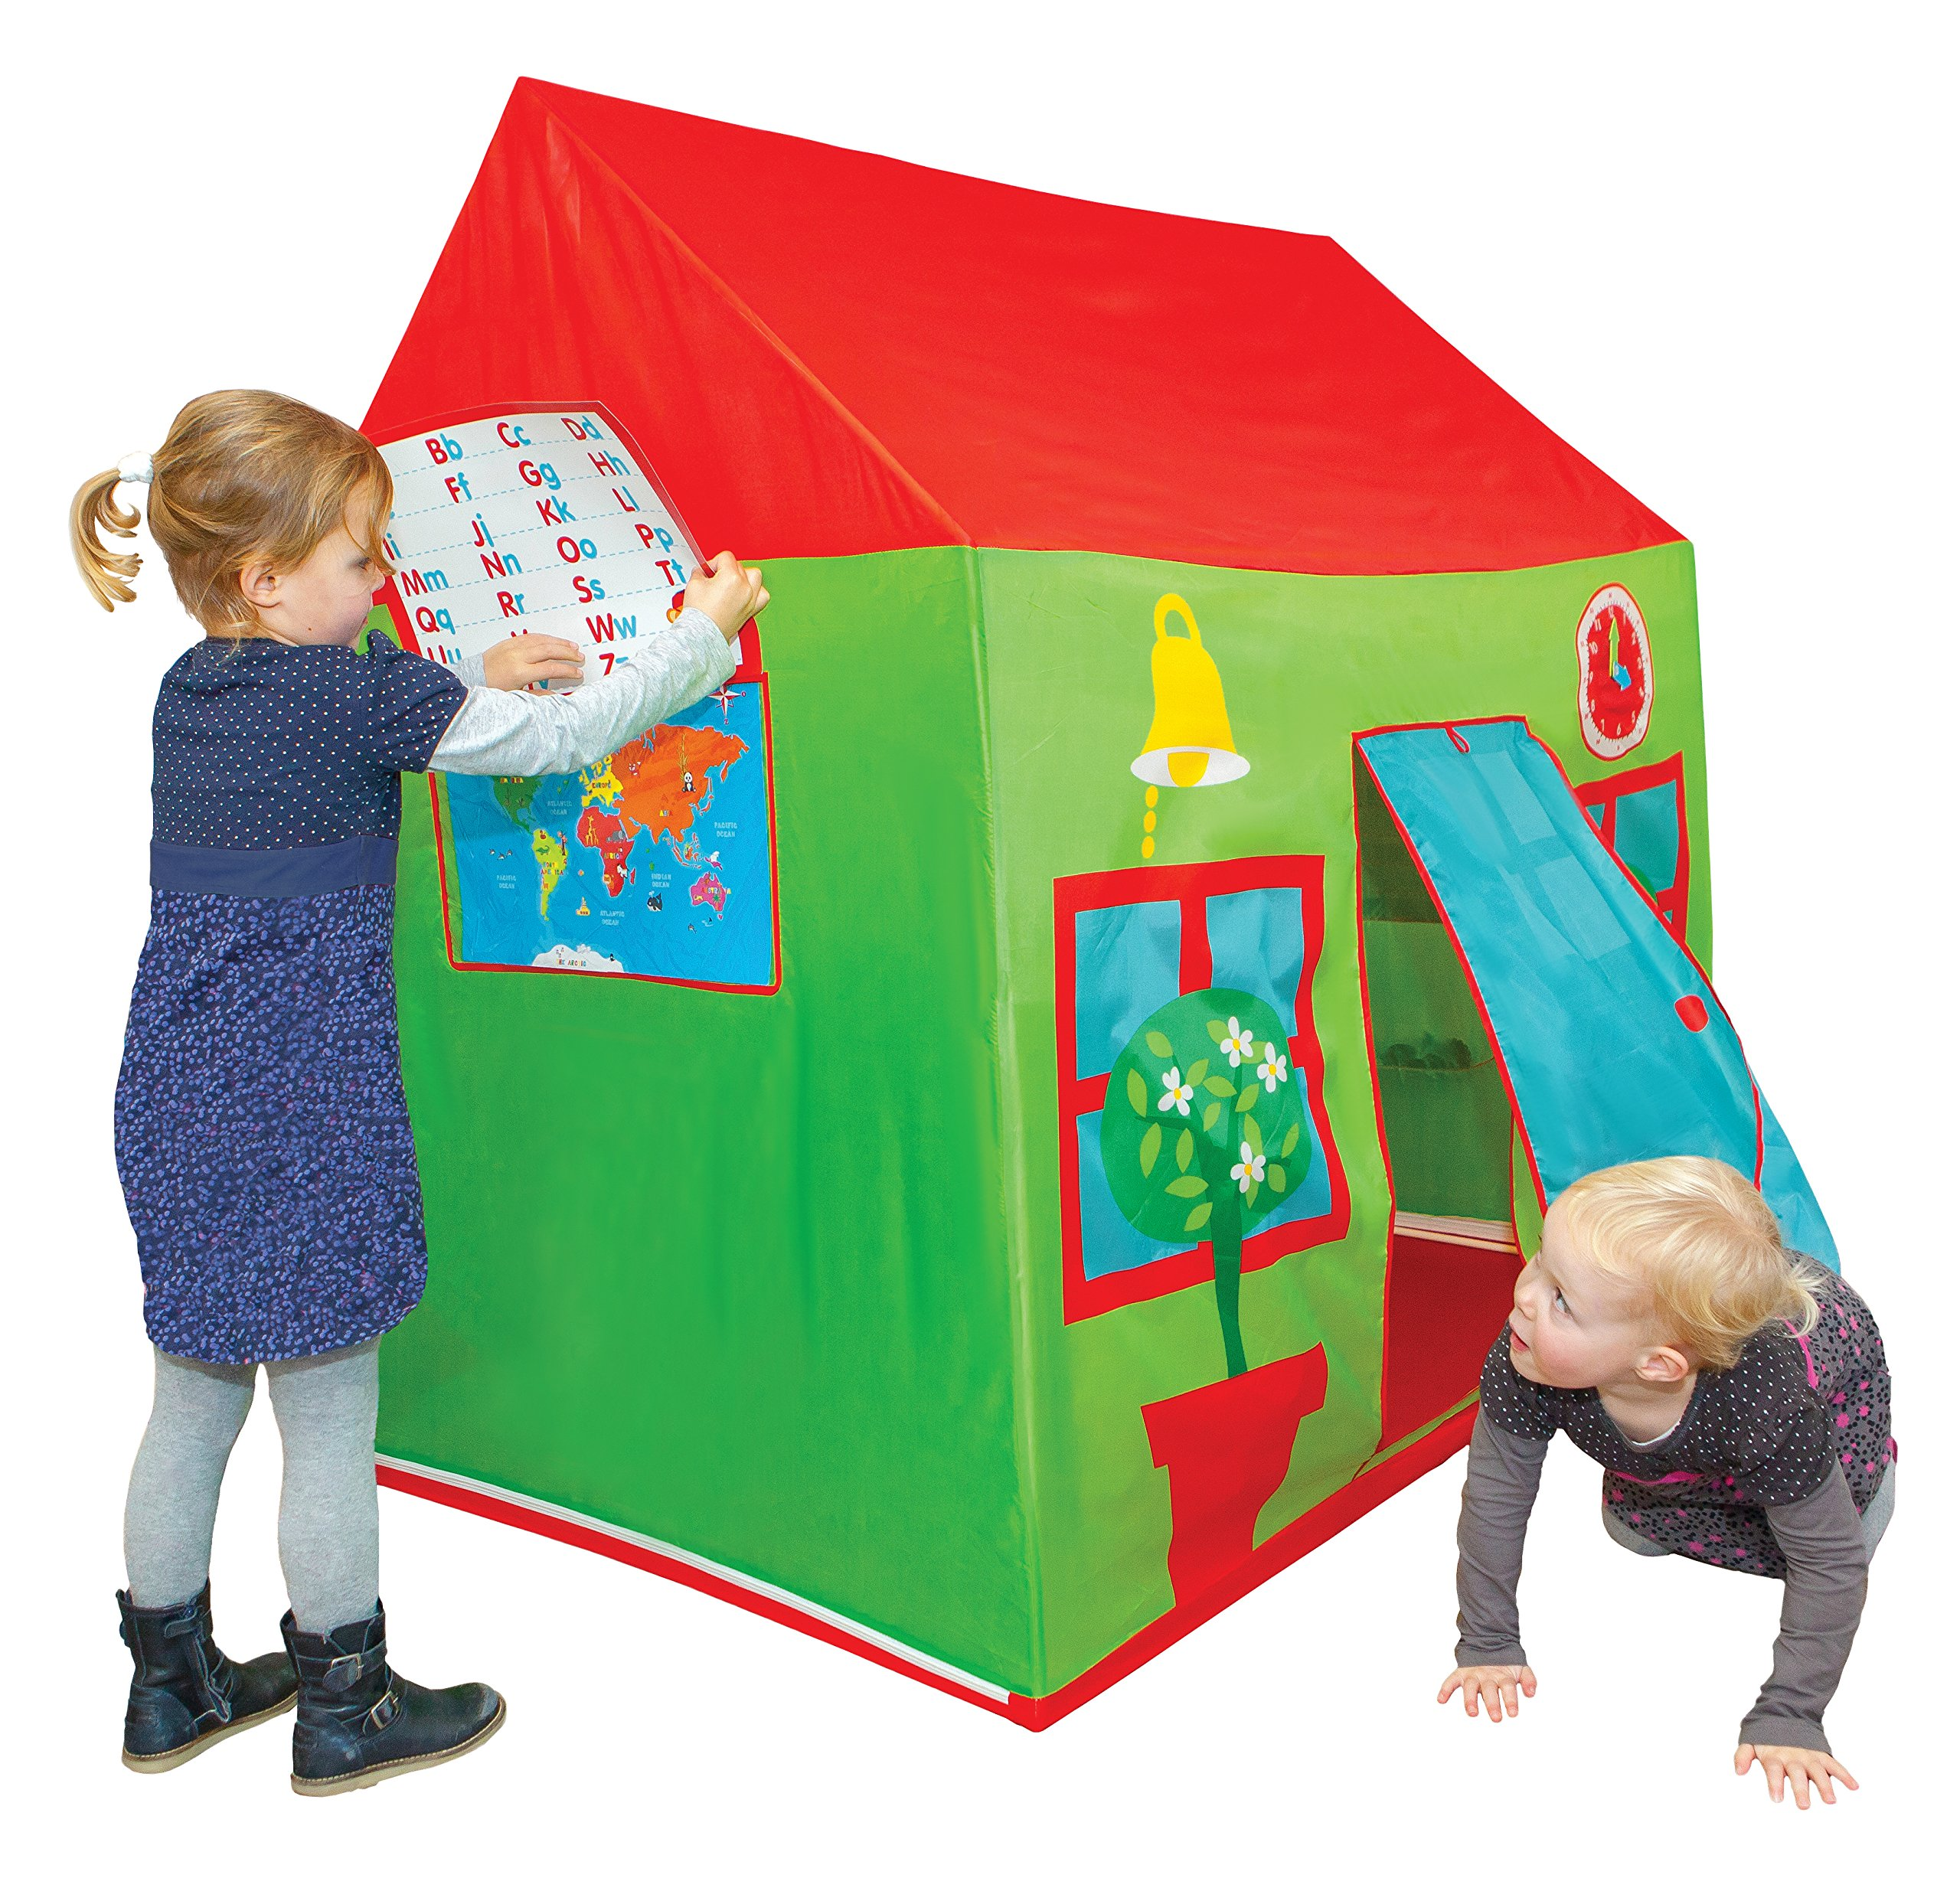 School House Play Tent by Discovery Toys